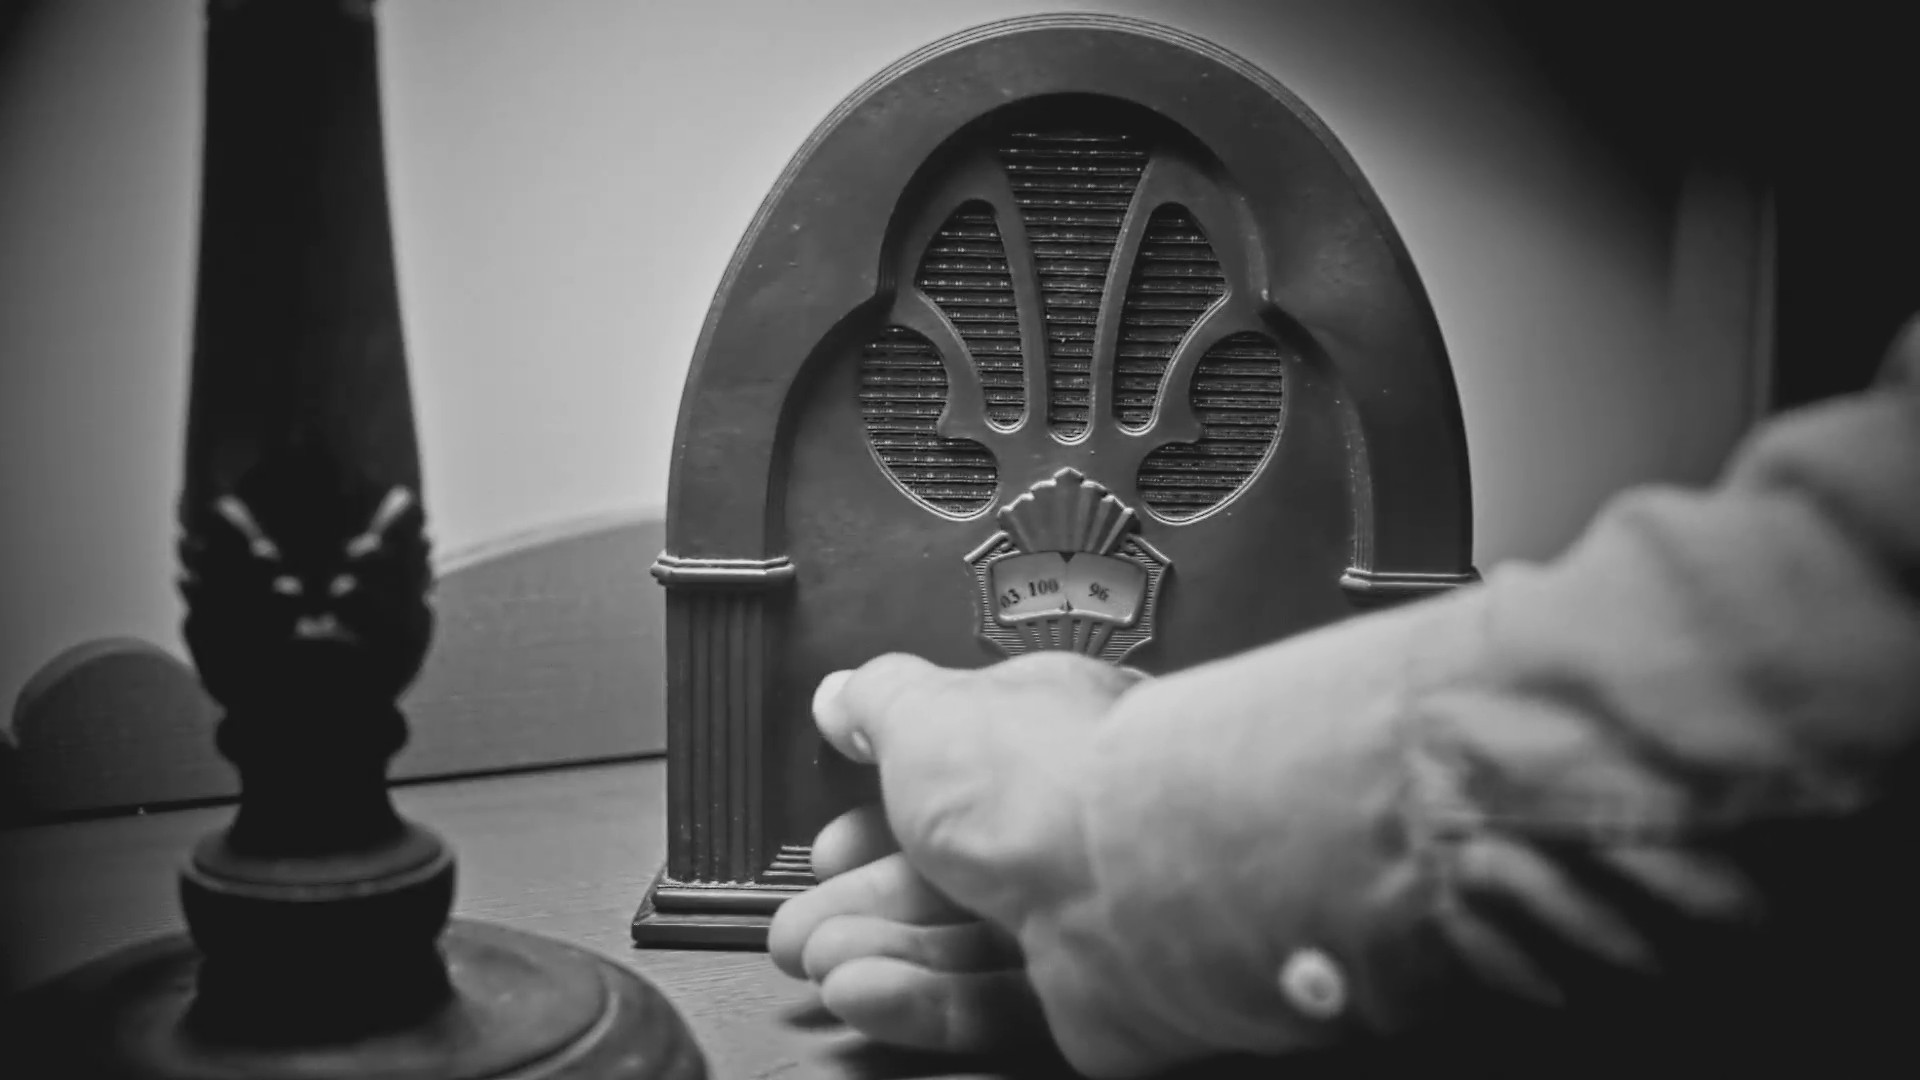 Radio noir film tuning bedroom hand. The hand of a man turns the dial on an  old vintage 1940's radio sitting on a night stand in a bedroom.